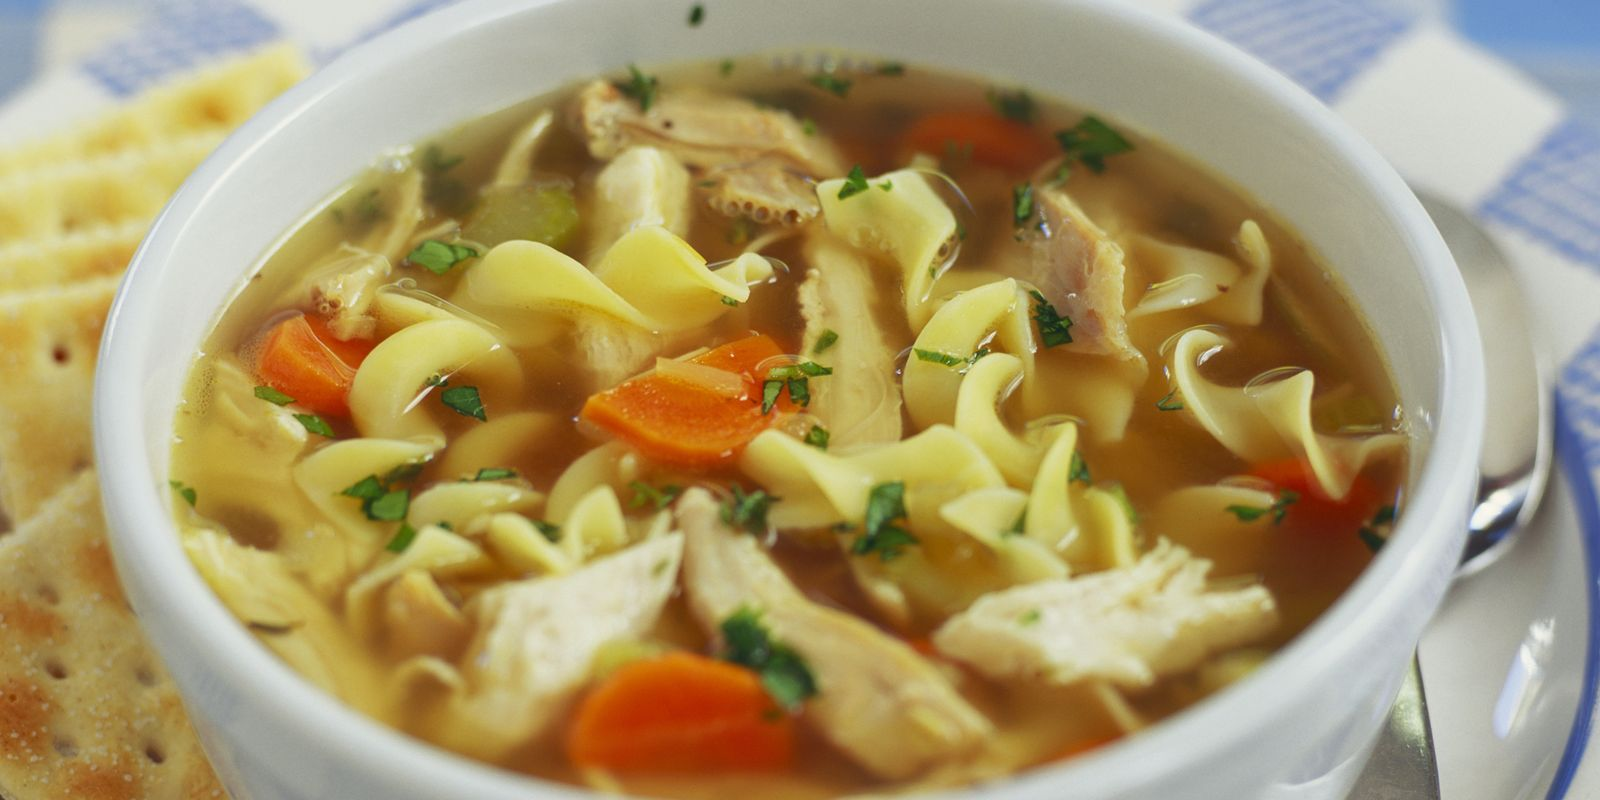 54f4a5bf1042a_-_chicken-noodle-soup-recipe.jpg